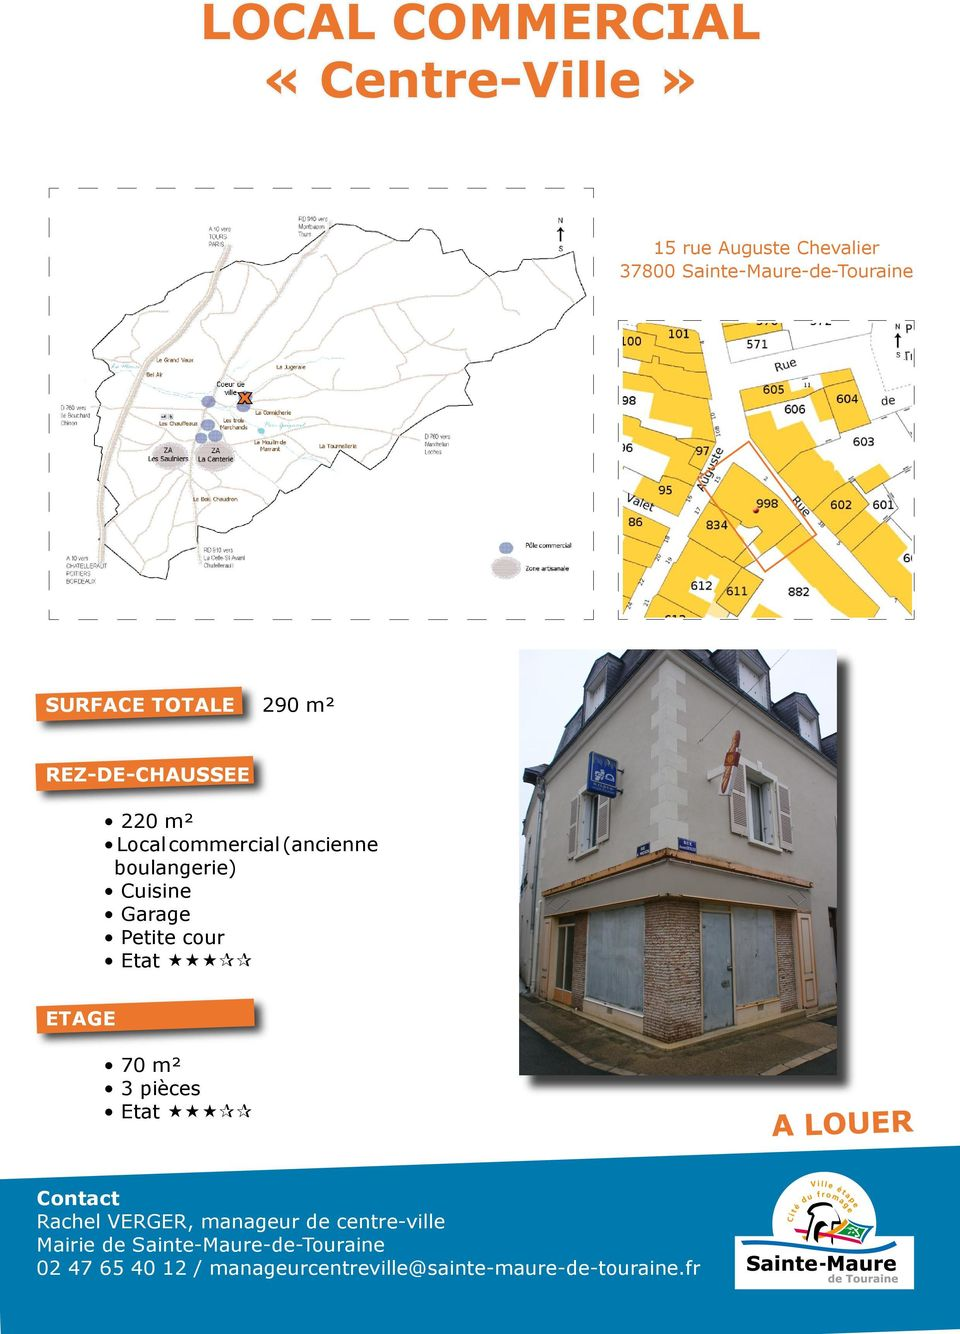 220 m² Local commercial (ancienne boulangerie)